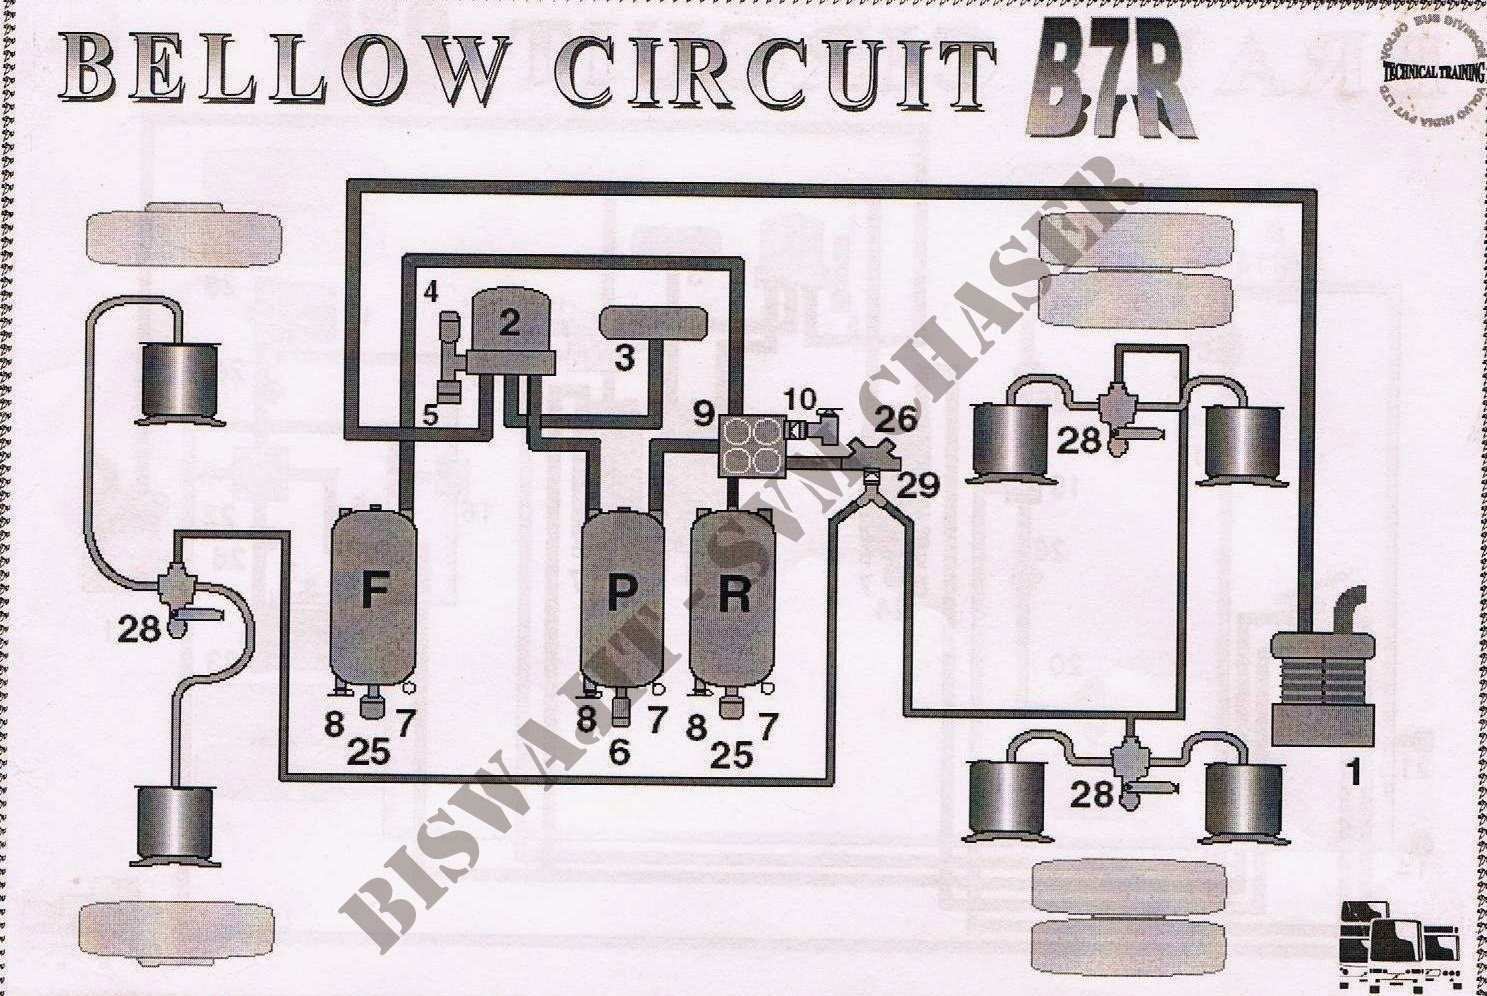 BELLOW_CIRCUIT_DIAGRAM_VOLVO_B7R 100 [ volvo c303 wiring diagram ] in the  tank 240 volvo tank at highcare